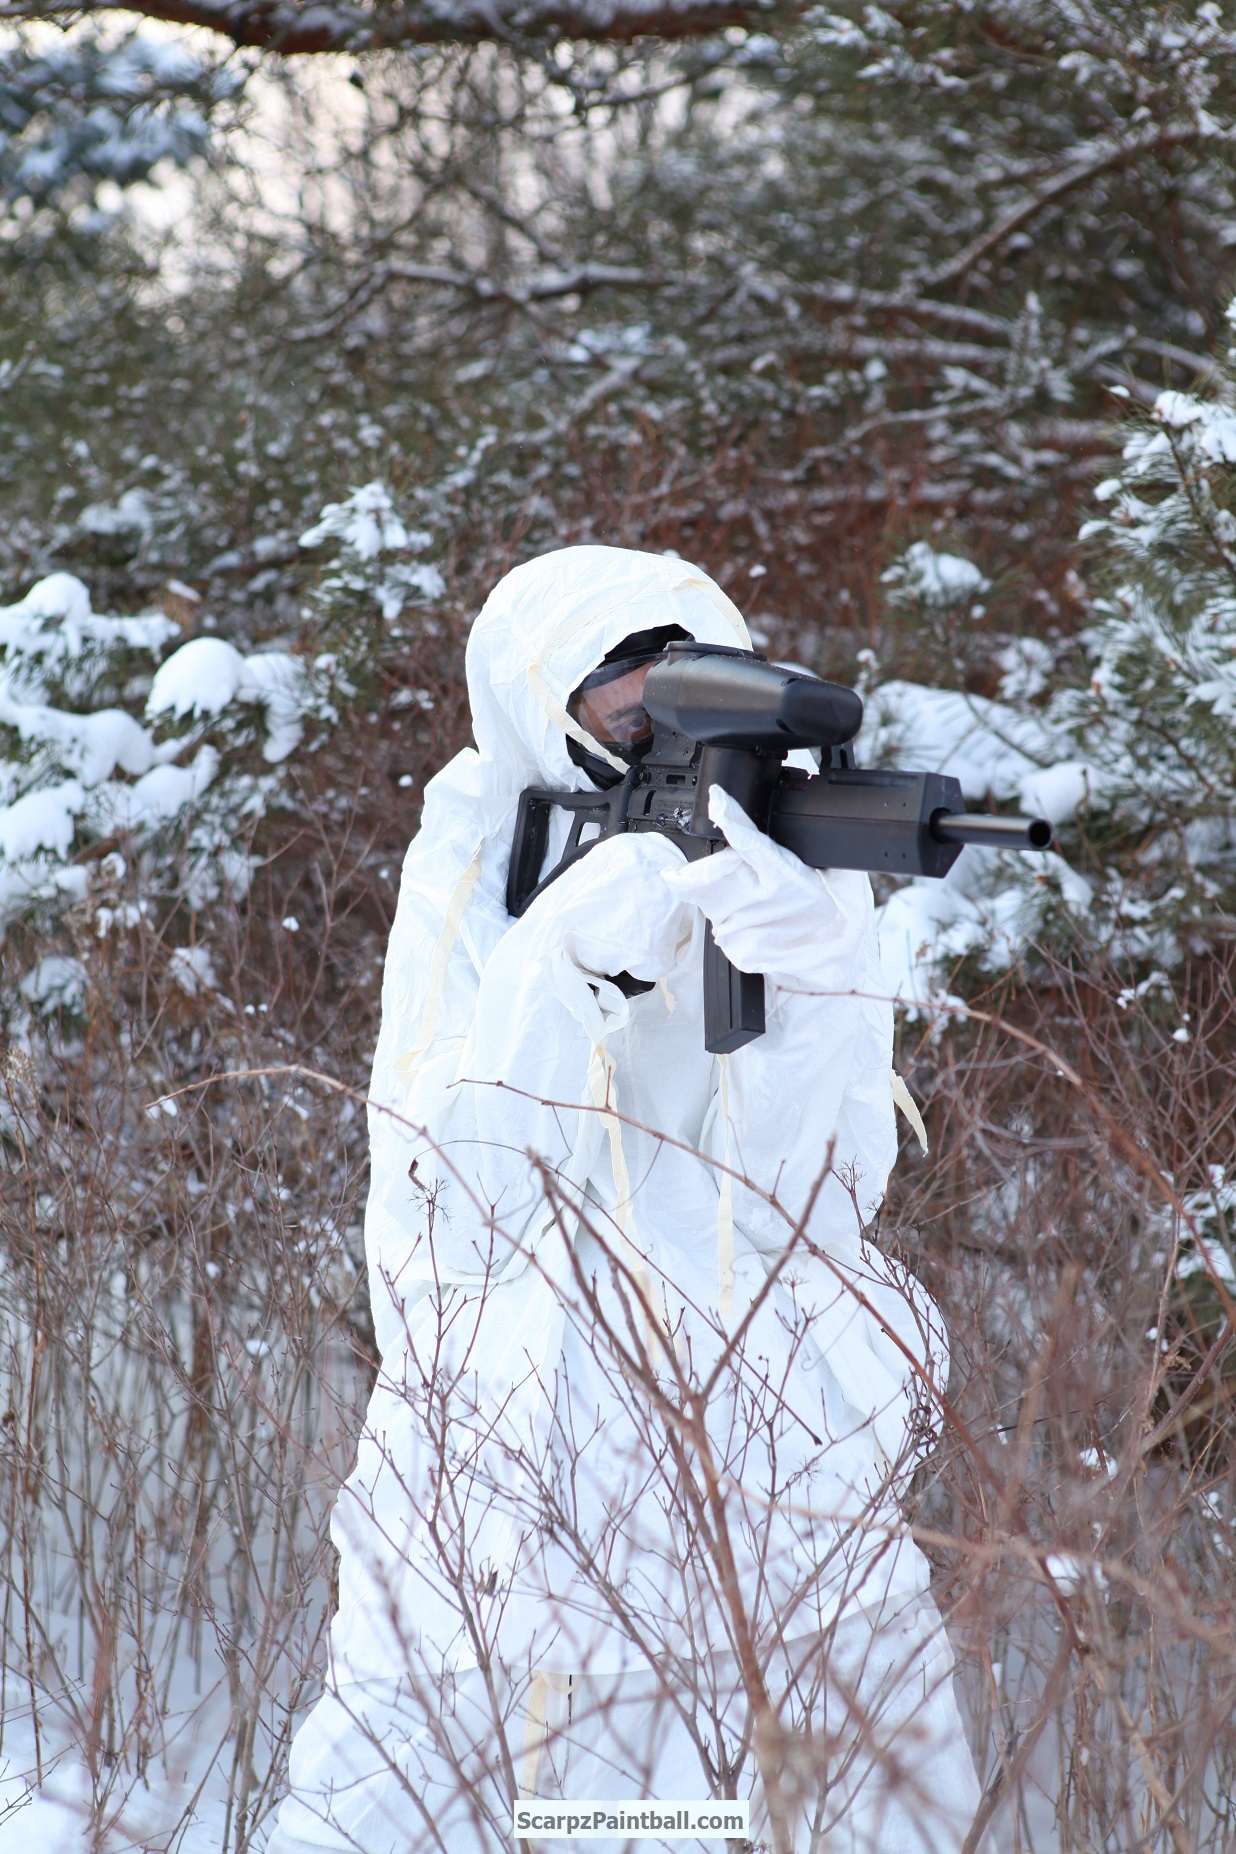 paintball essay Thinking critically about paintball: promoter of violence or healthy fun 1 my own view of paintball has been this: it's a militaristic rich kids sport that fosters a social acceptance of war in children  ross taylor's essay did little in moving my understanding over to his position, however the largest addition to knowledge.